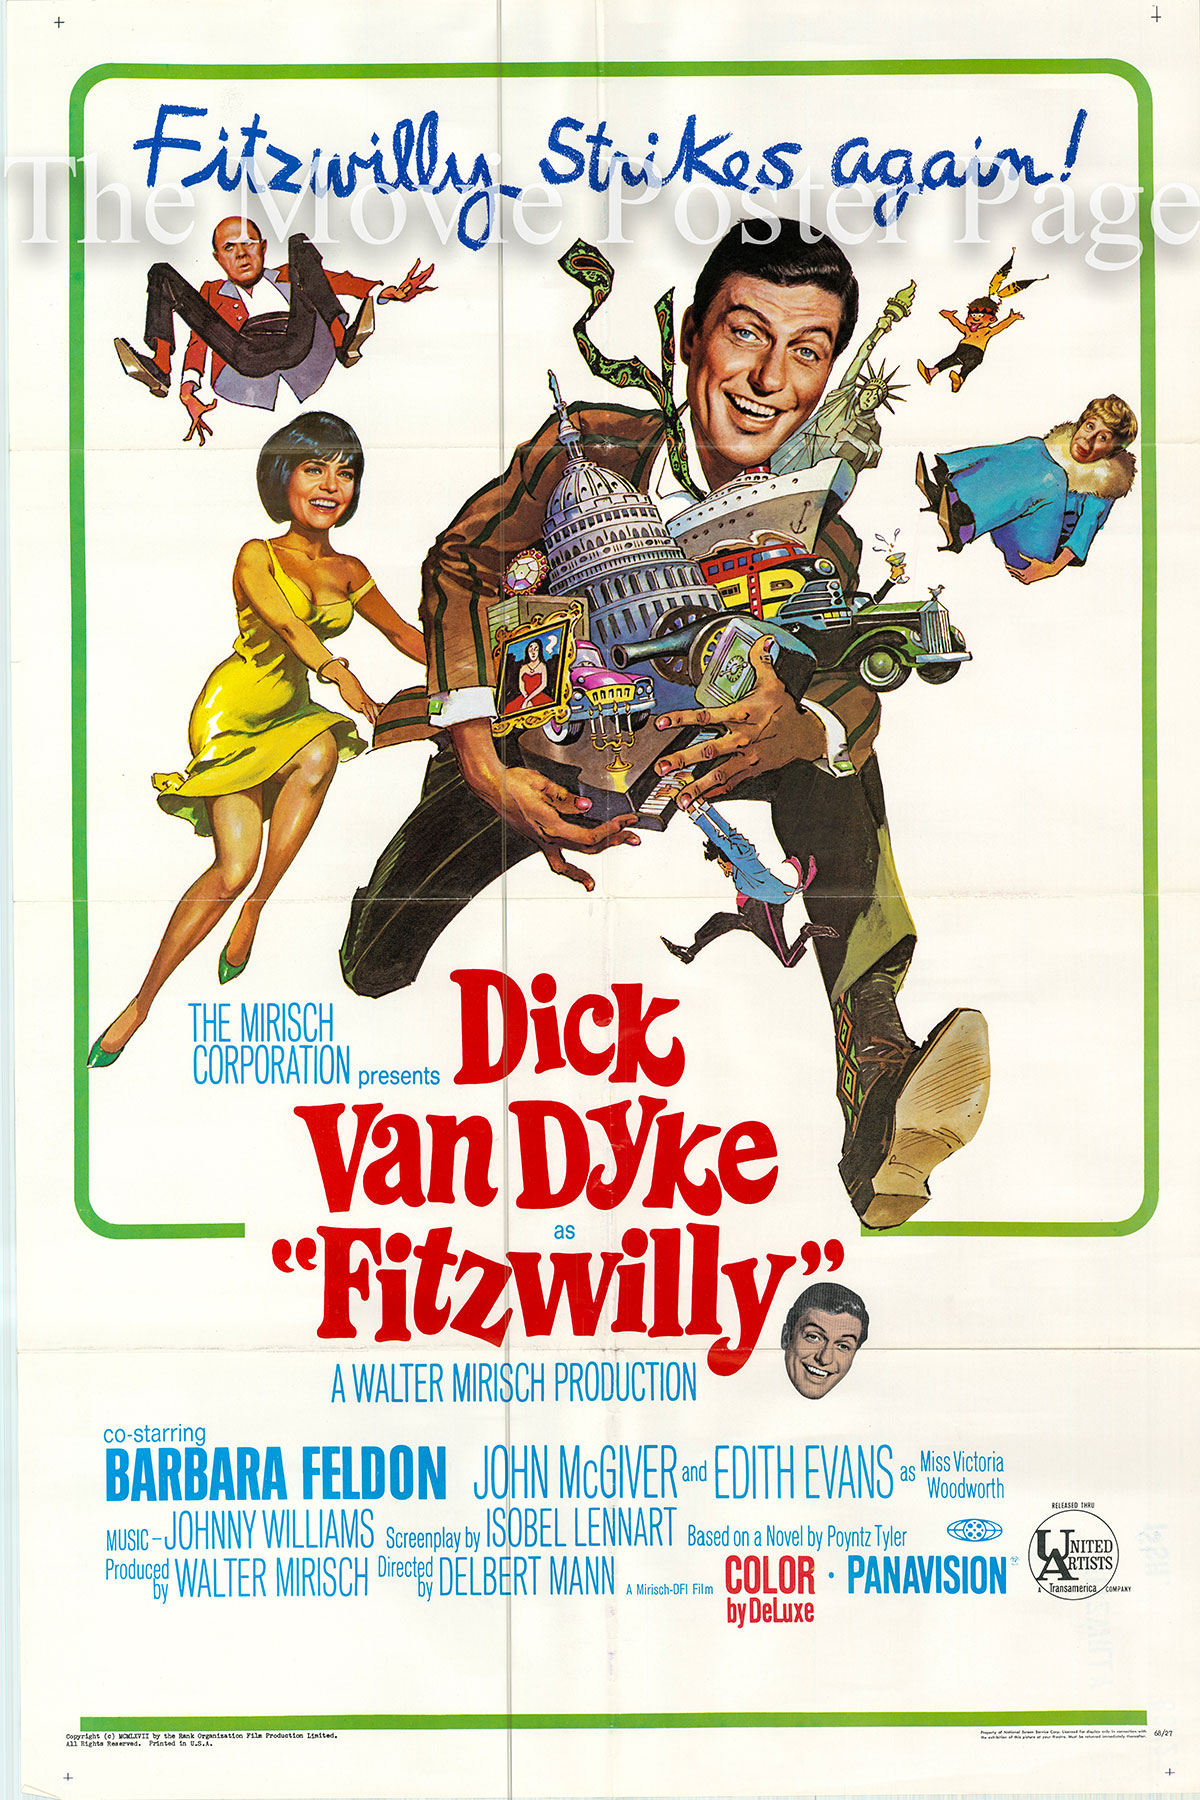 Pictured is a US one-sheet promotional poster for the 1967 Delbert Mann film Fitzwilly starring Dick Van Dyke as Claude R. Fitzwilliam.